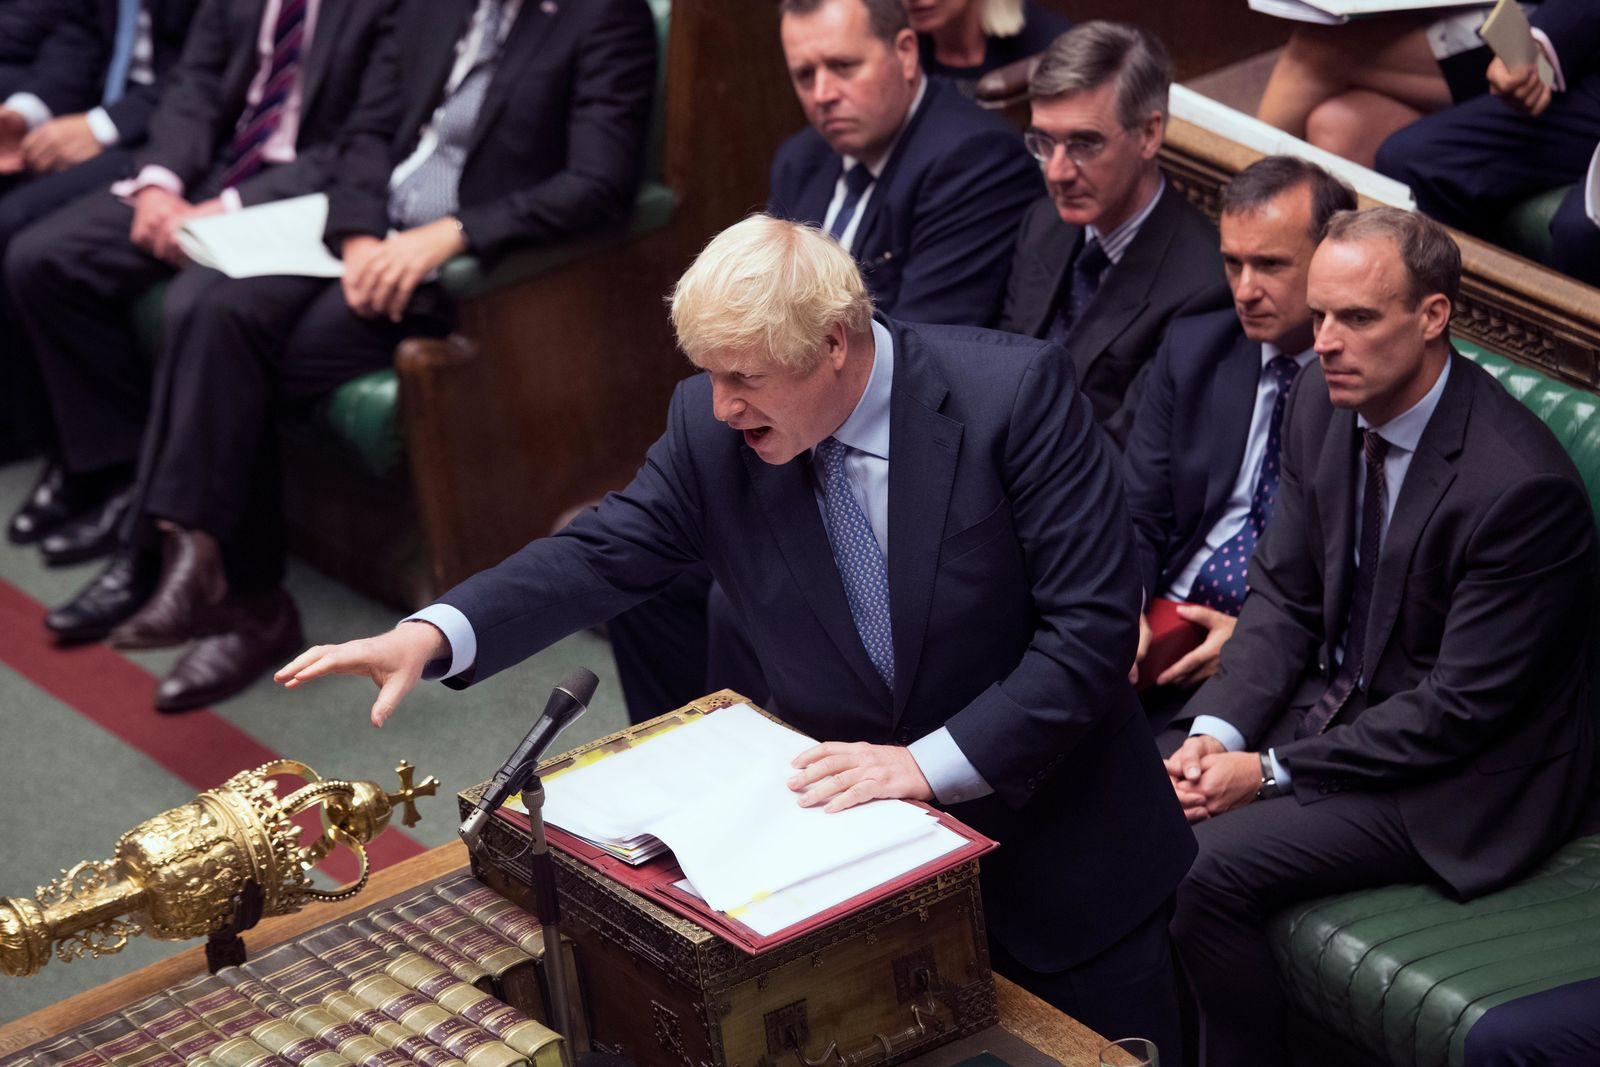 In this handout photo provided by the House of Commons, Britain's Prime Minister Boris Johnson gestures during his first Prime Minister's Questions, in the House of Commons in London, Wednesday, Sept. 4, 2019. (Jessica Taylor/House of Commons via AP)